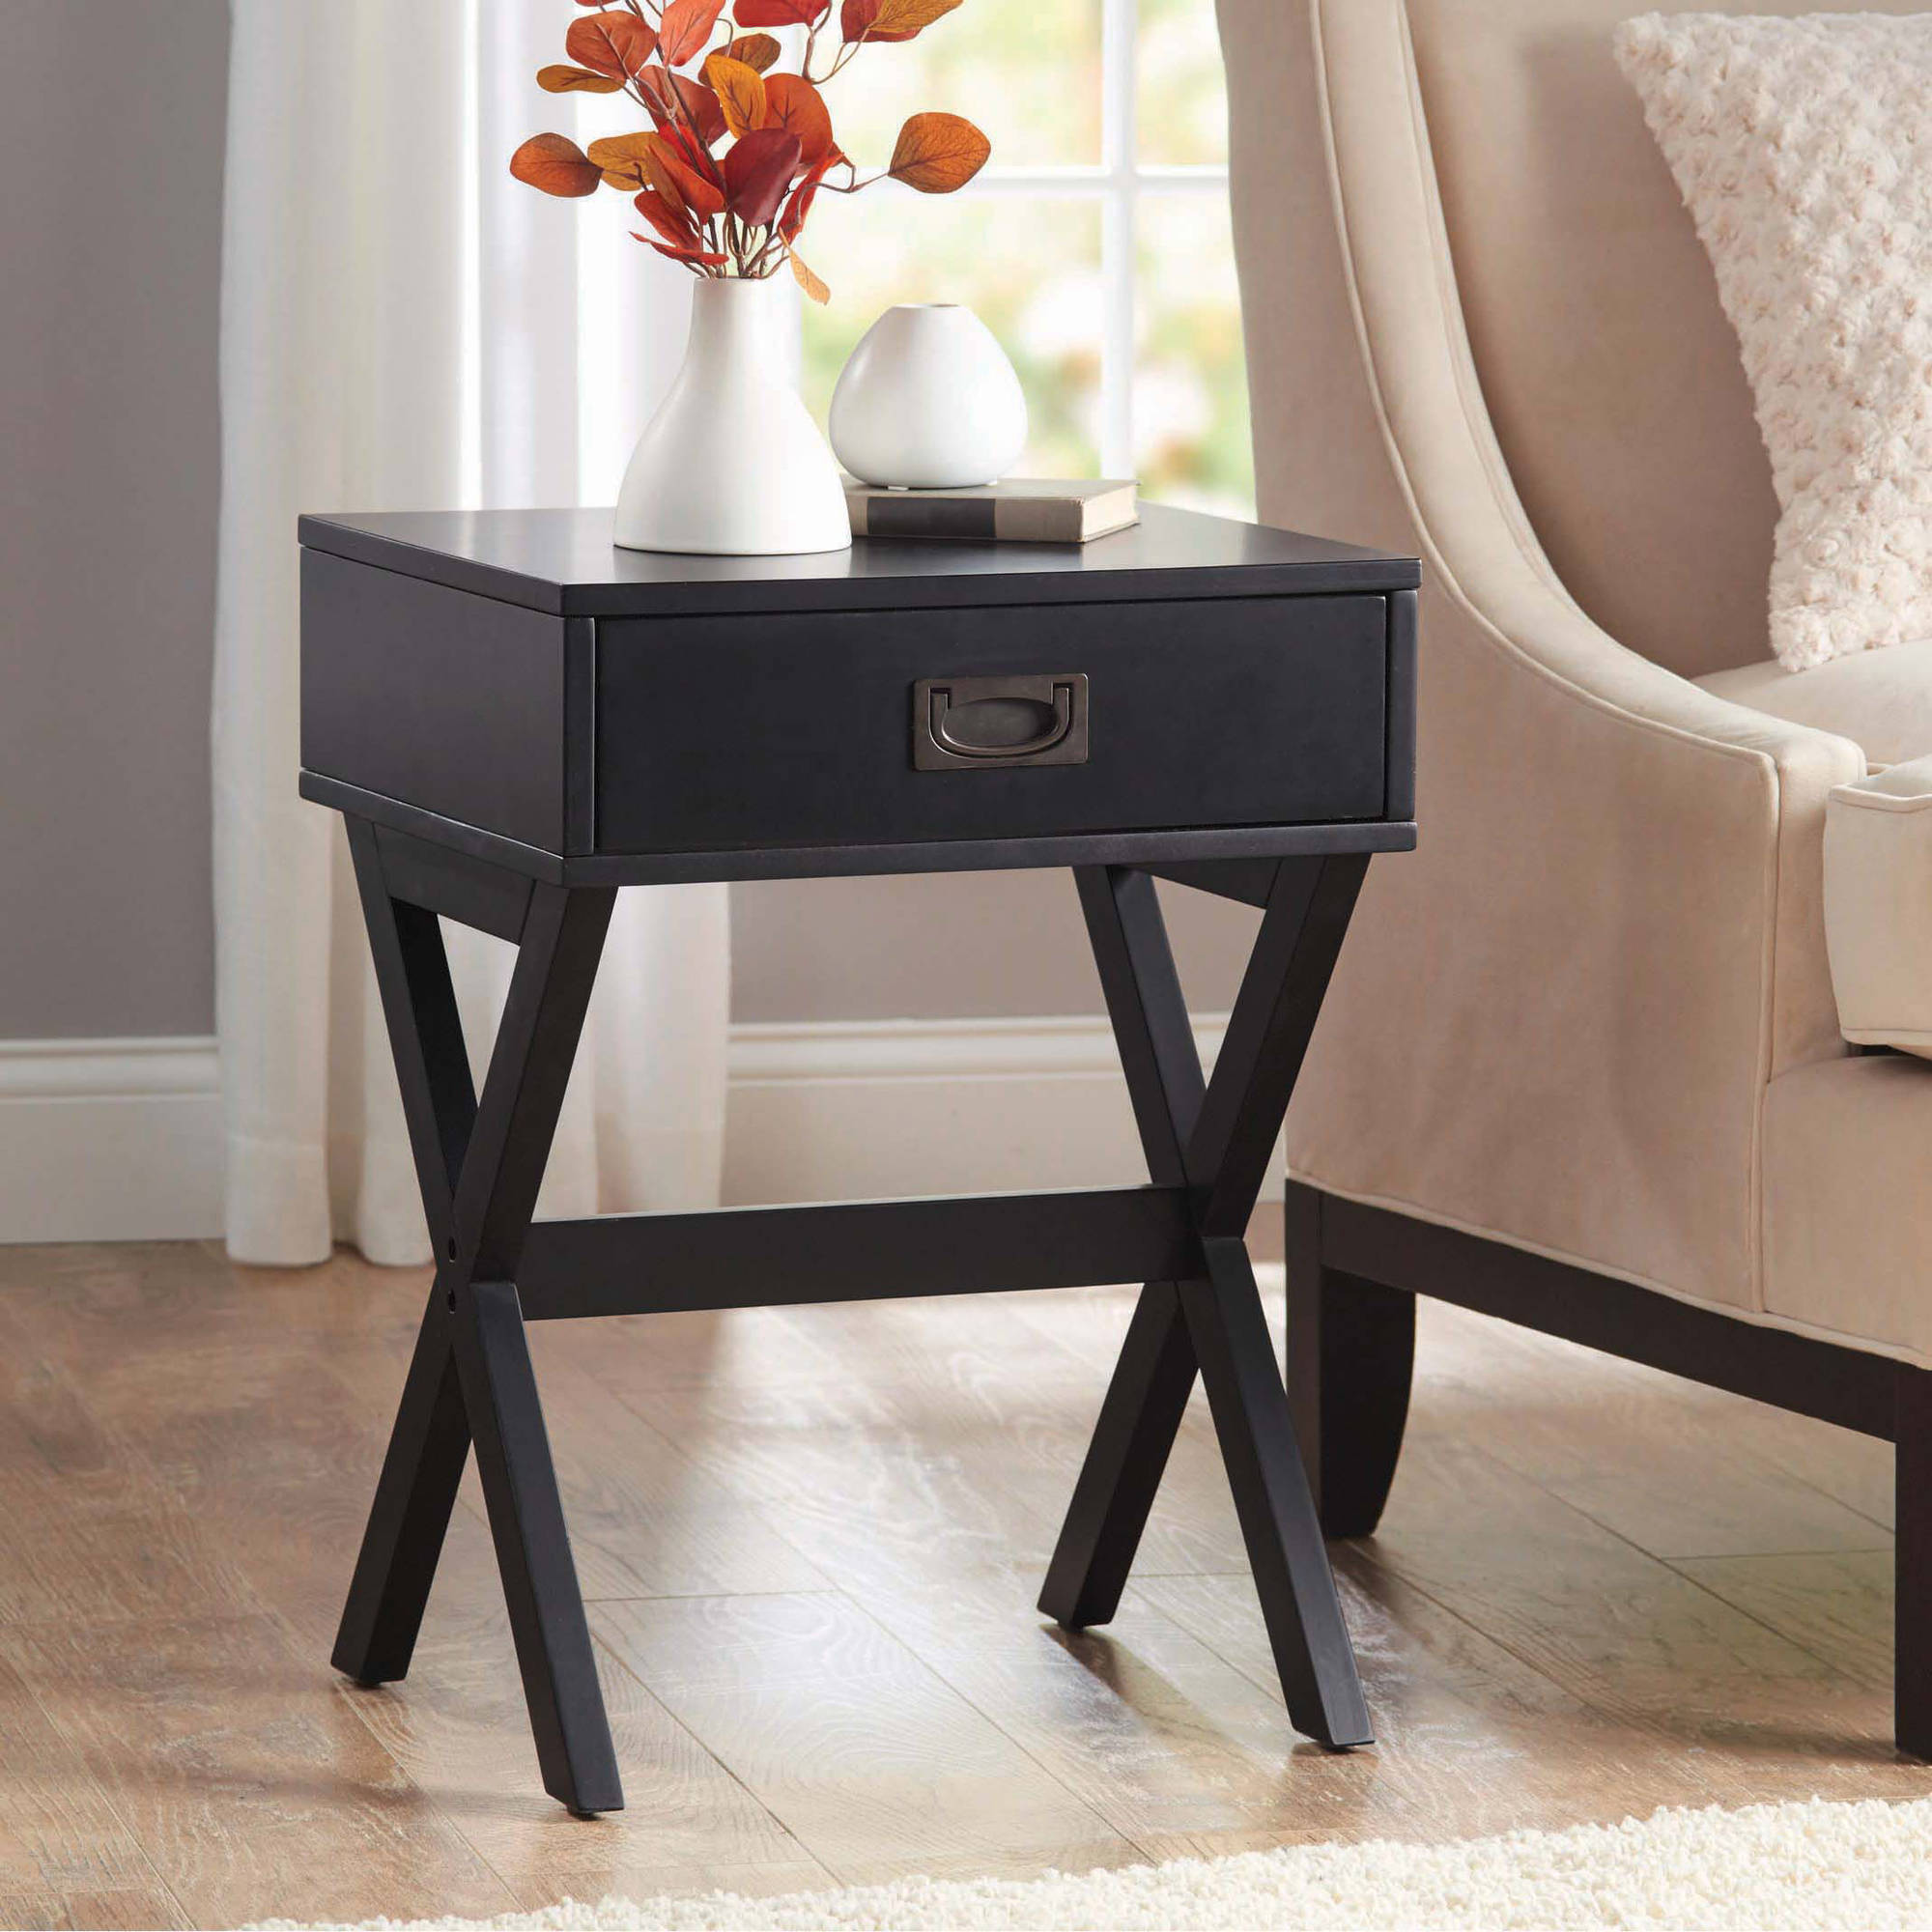 Looks - Wooden stylish side table video